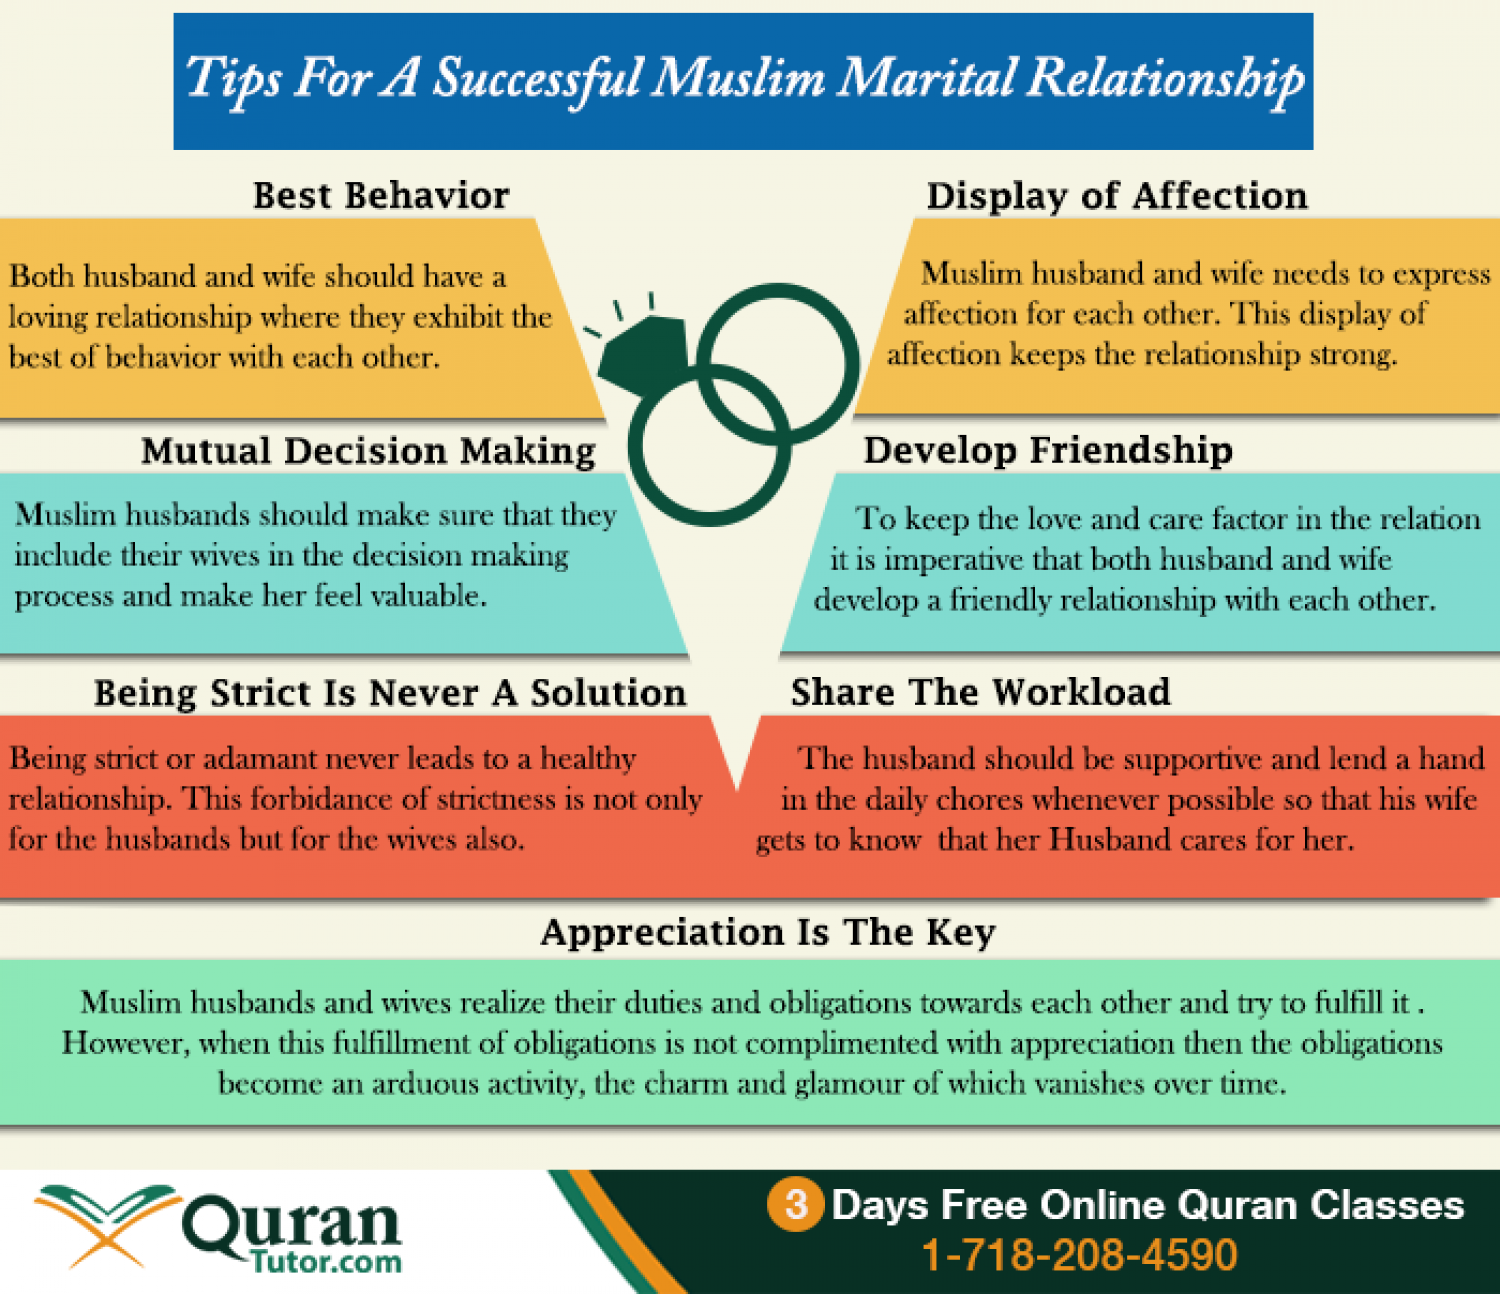 Dating a muslim man advice